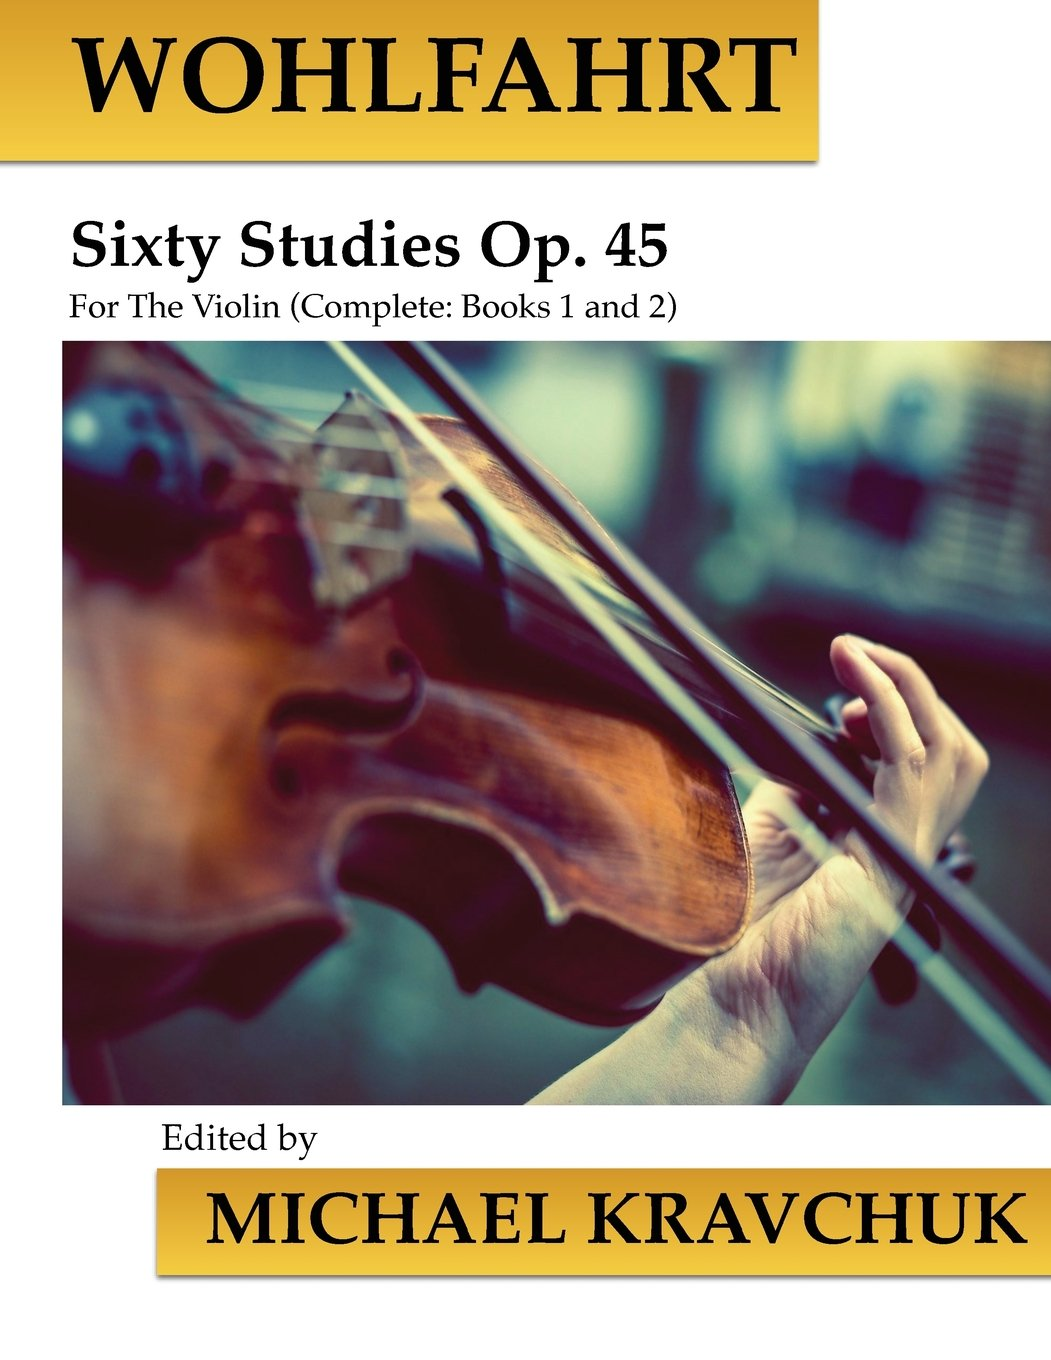 Read Online Wohlfahrt Sixty Studies For The Violin Op. 45: Complete Books 1 and 2 pdf epub